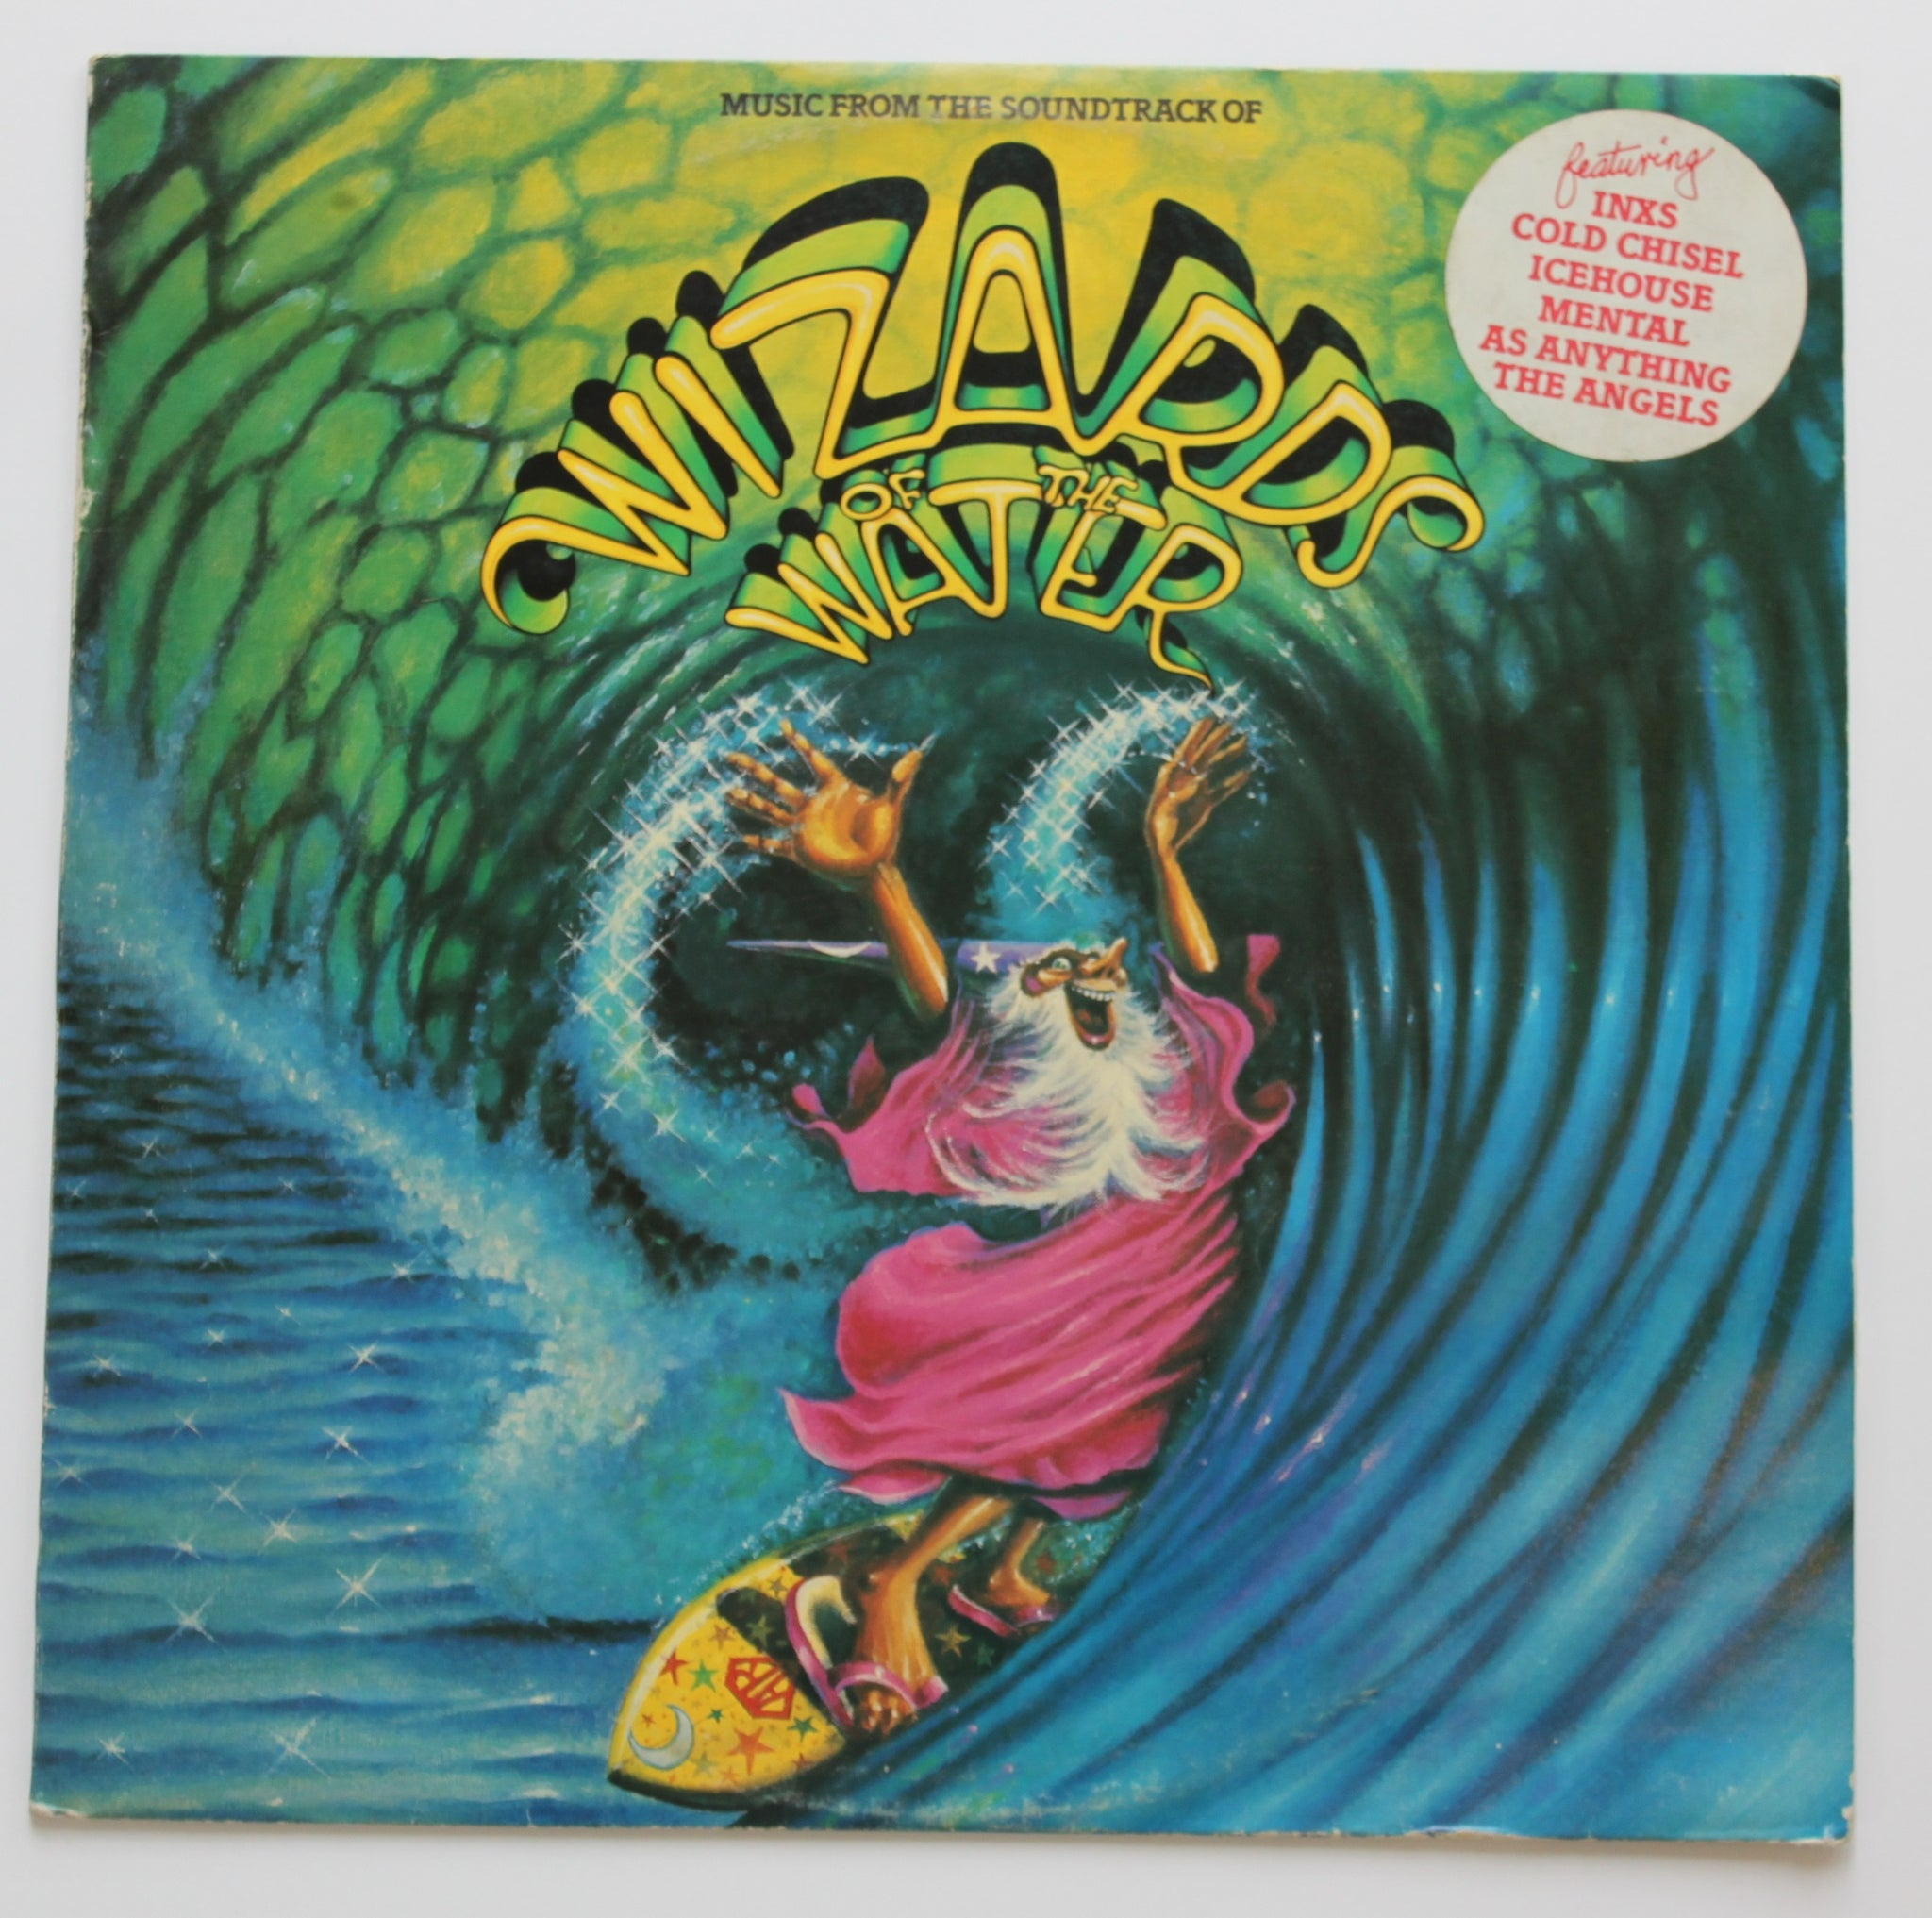 Wizards of the Water. Soundtrack album.